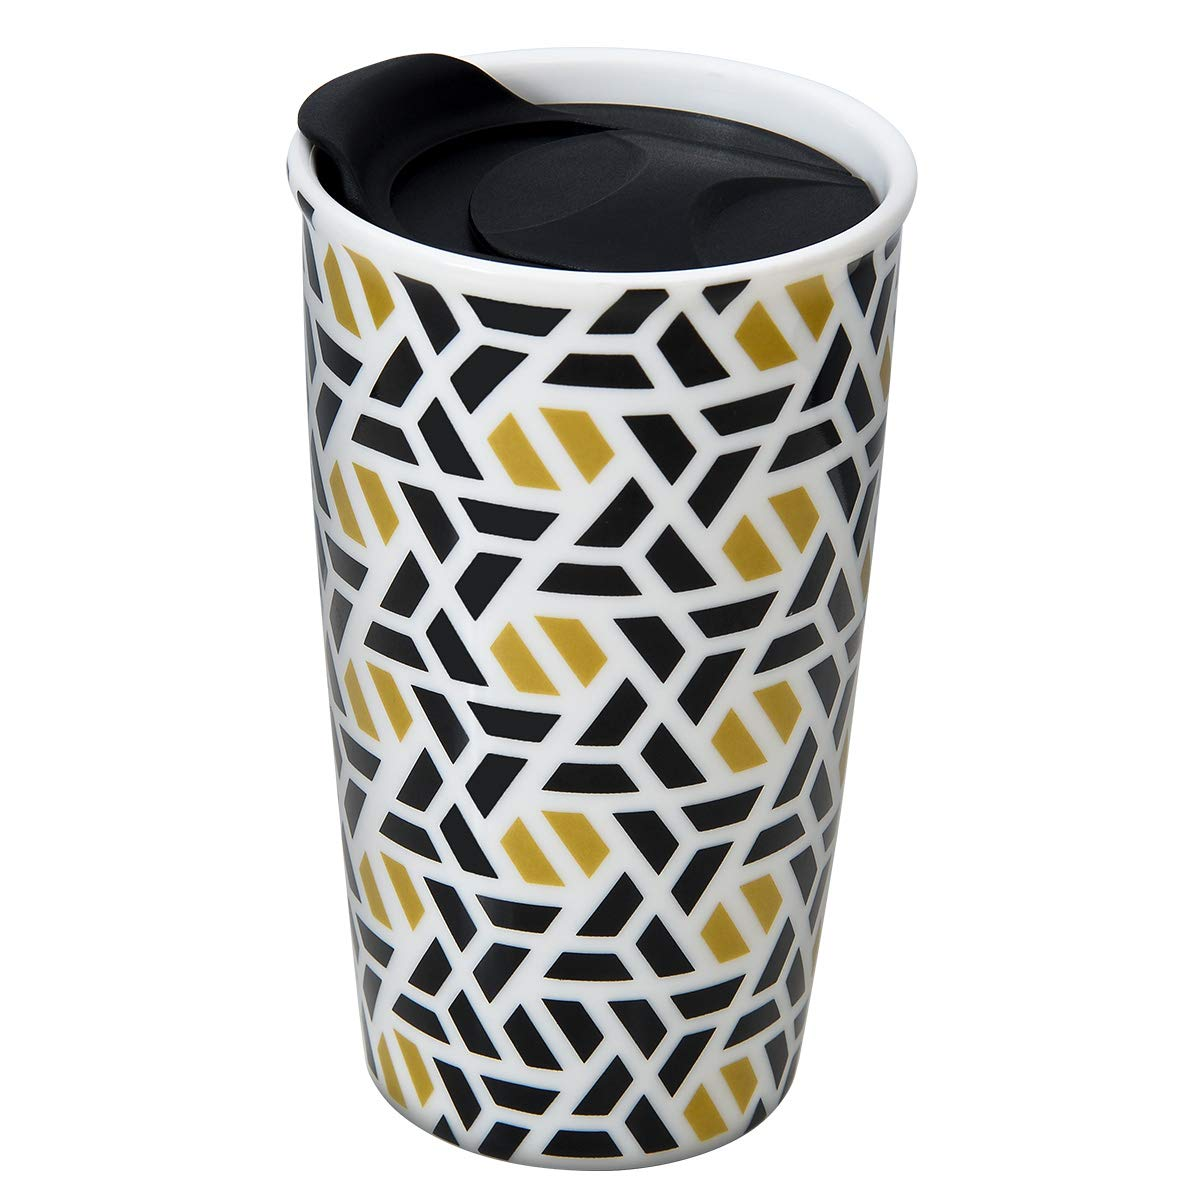 Ceramic Travel Mug - Double Wall Insulated Tumbler with Wrap Lid 12 oz Coffee Travel Mug Suitable for Both Hot and Cold Beverage Coffee Tumbler DishwasherSafe